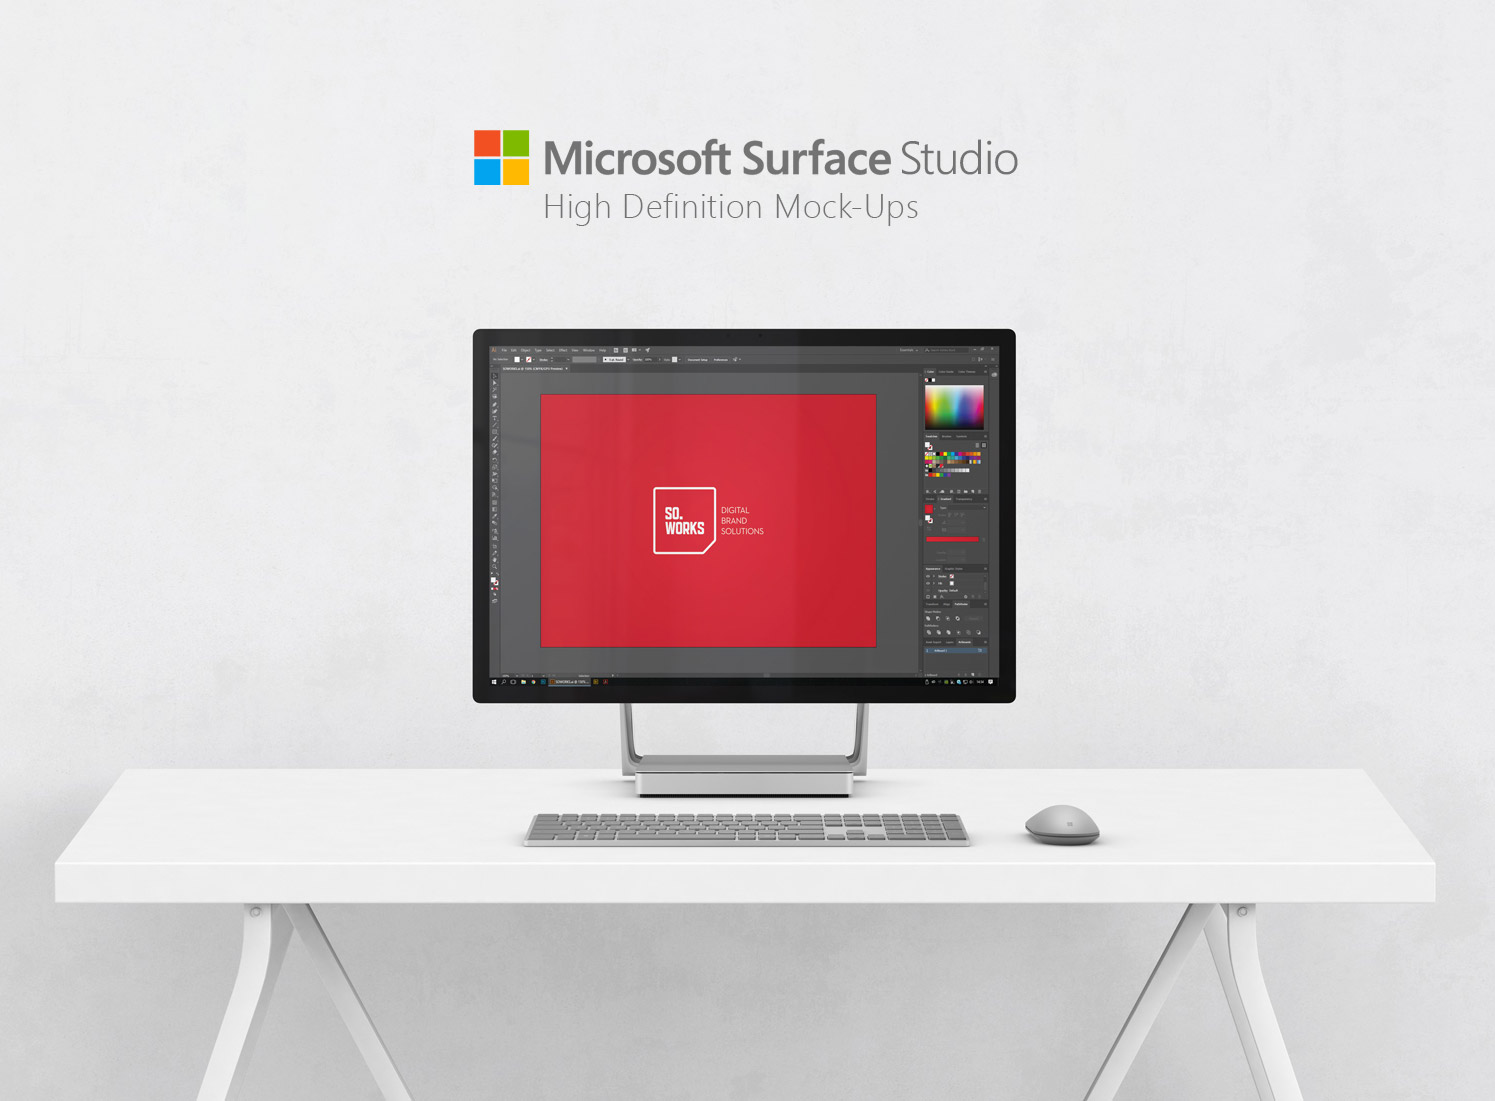 Microsoft Surface Studio On Desk Mockup Free Psd Download